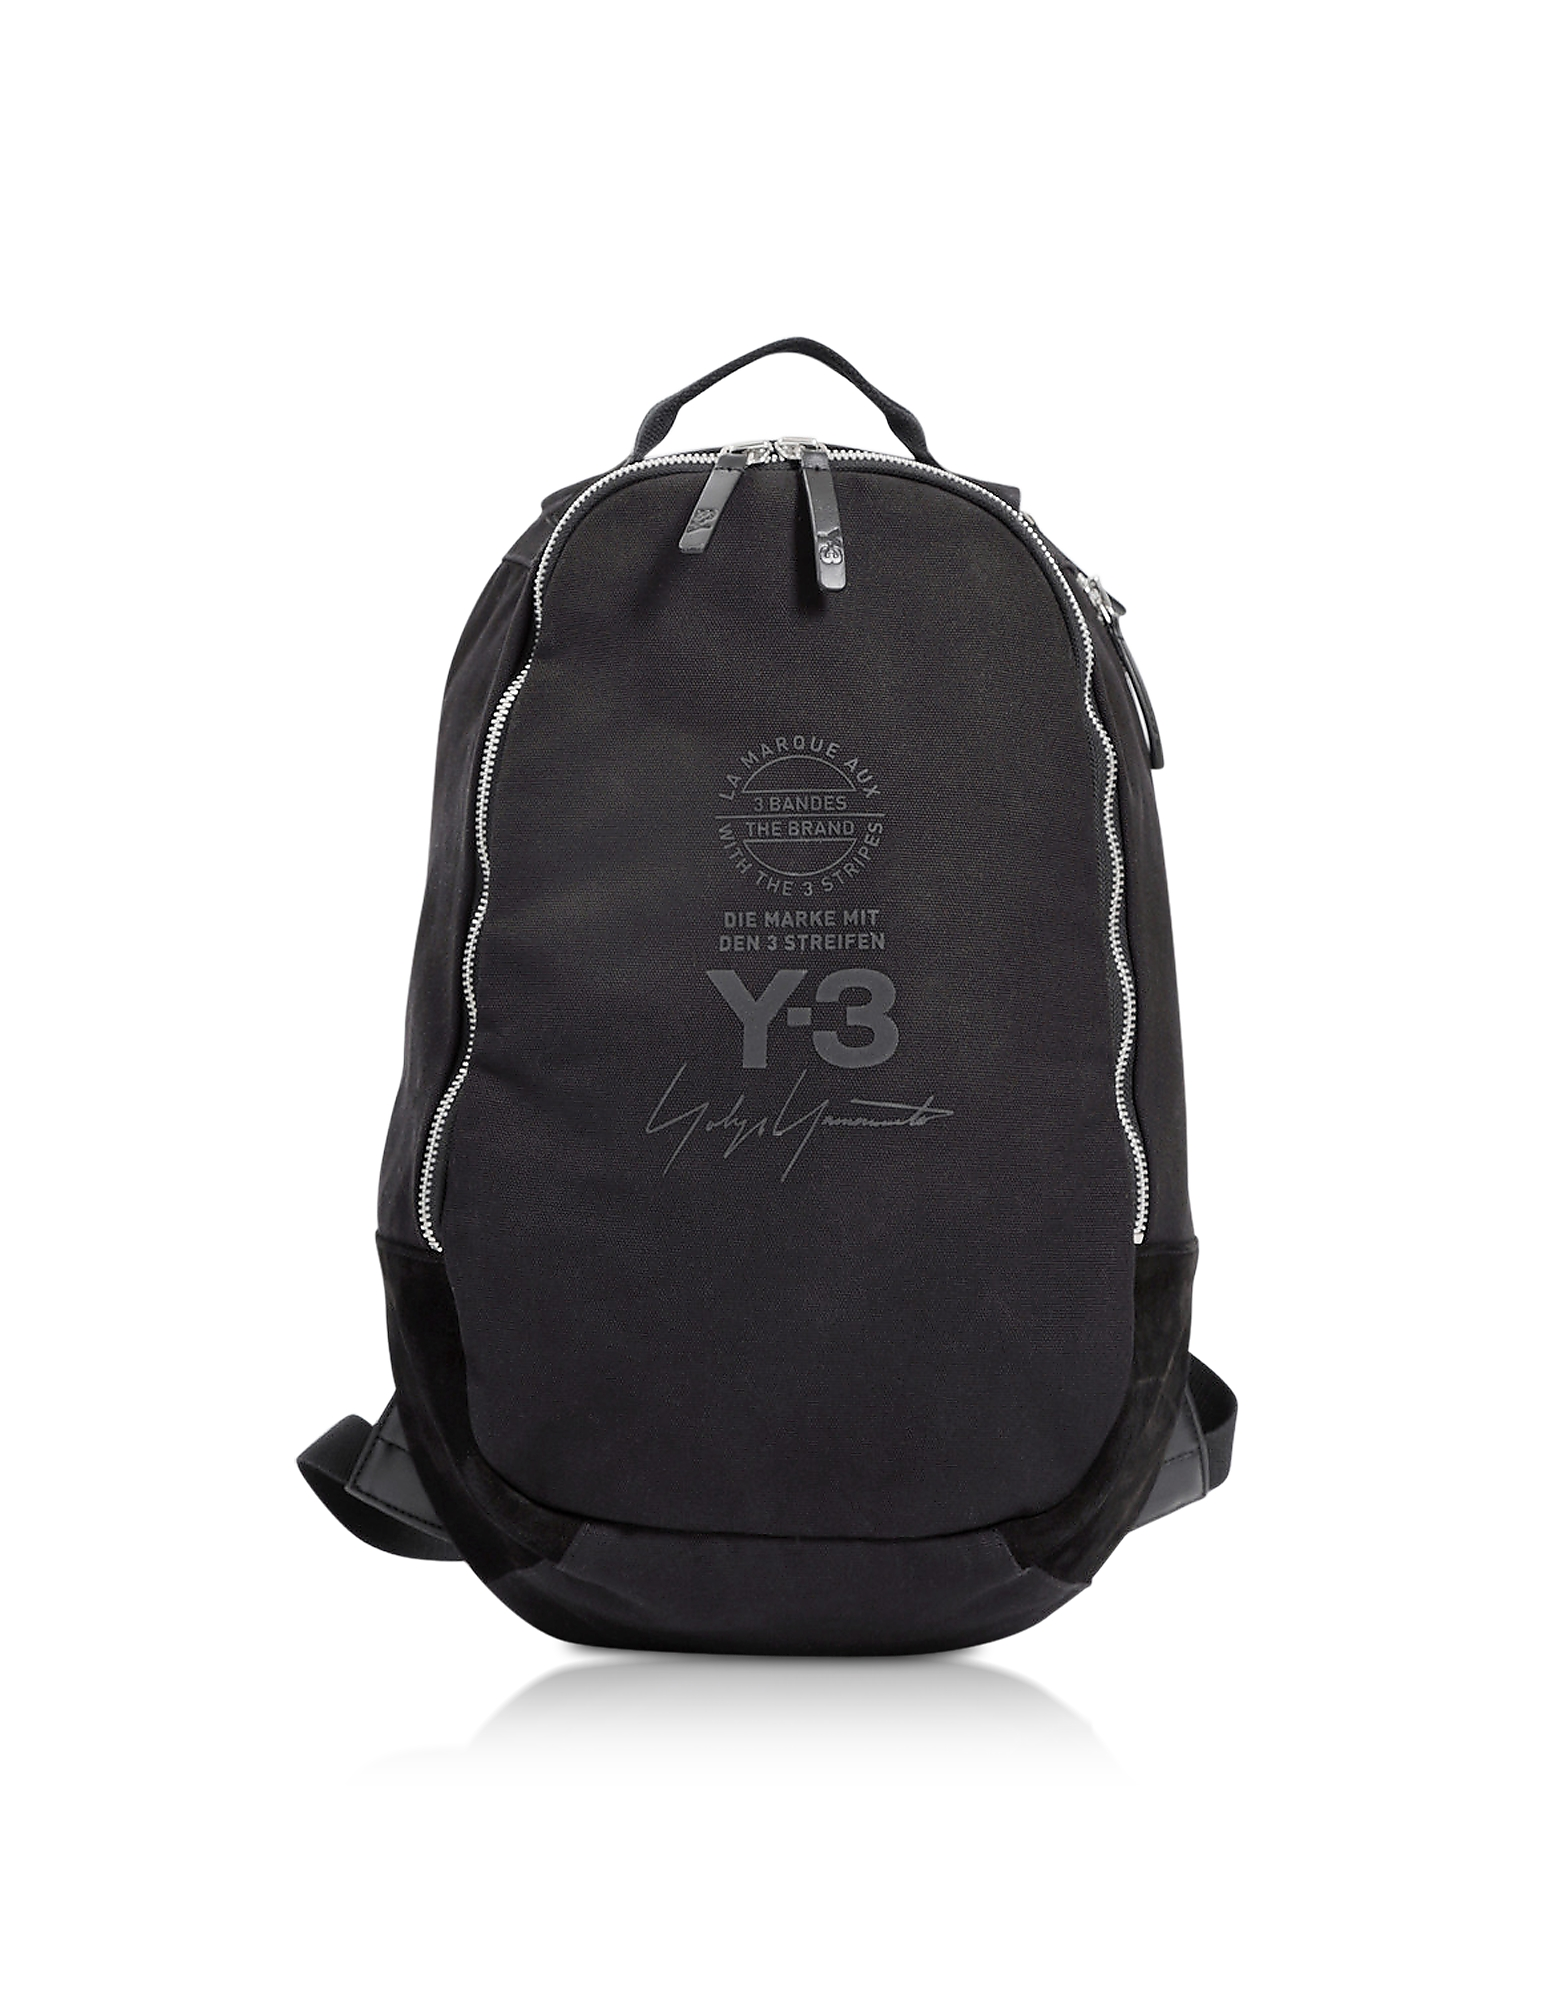 Y-3 Backpacks, Black Signature Nylon Backpack